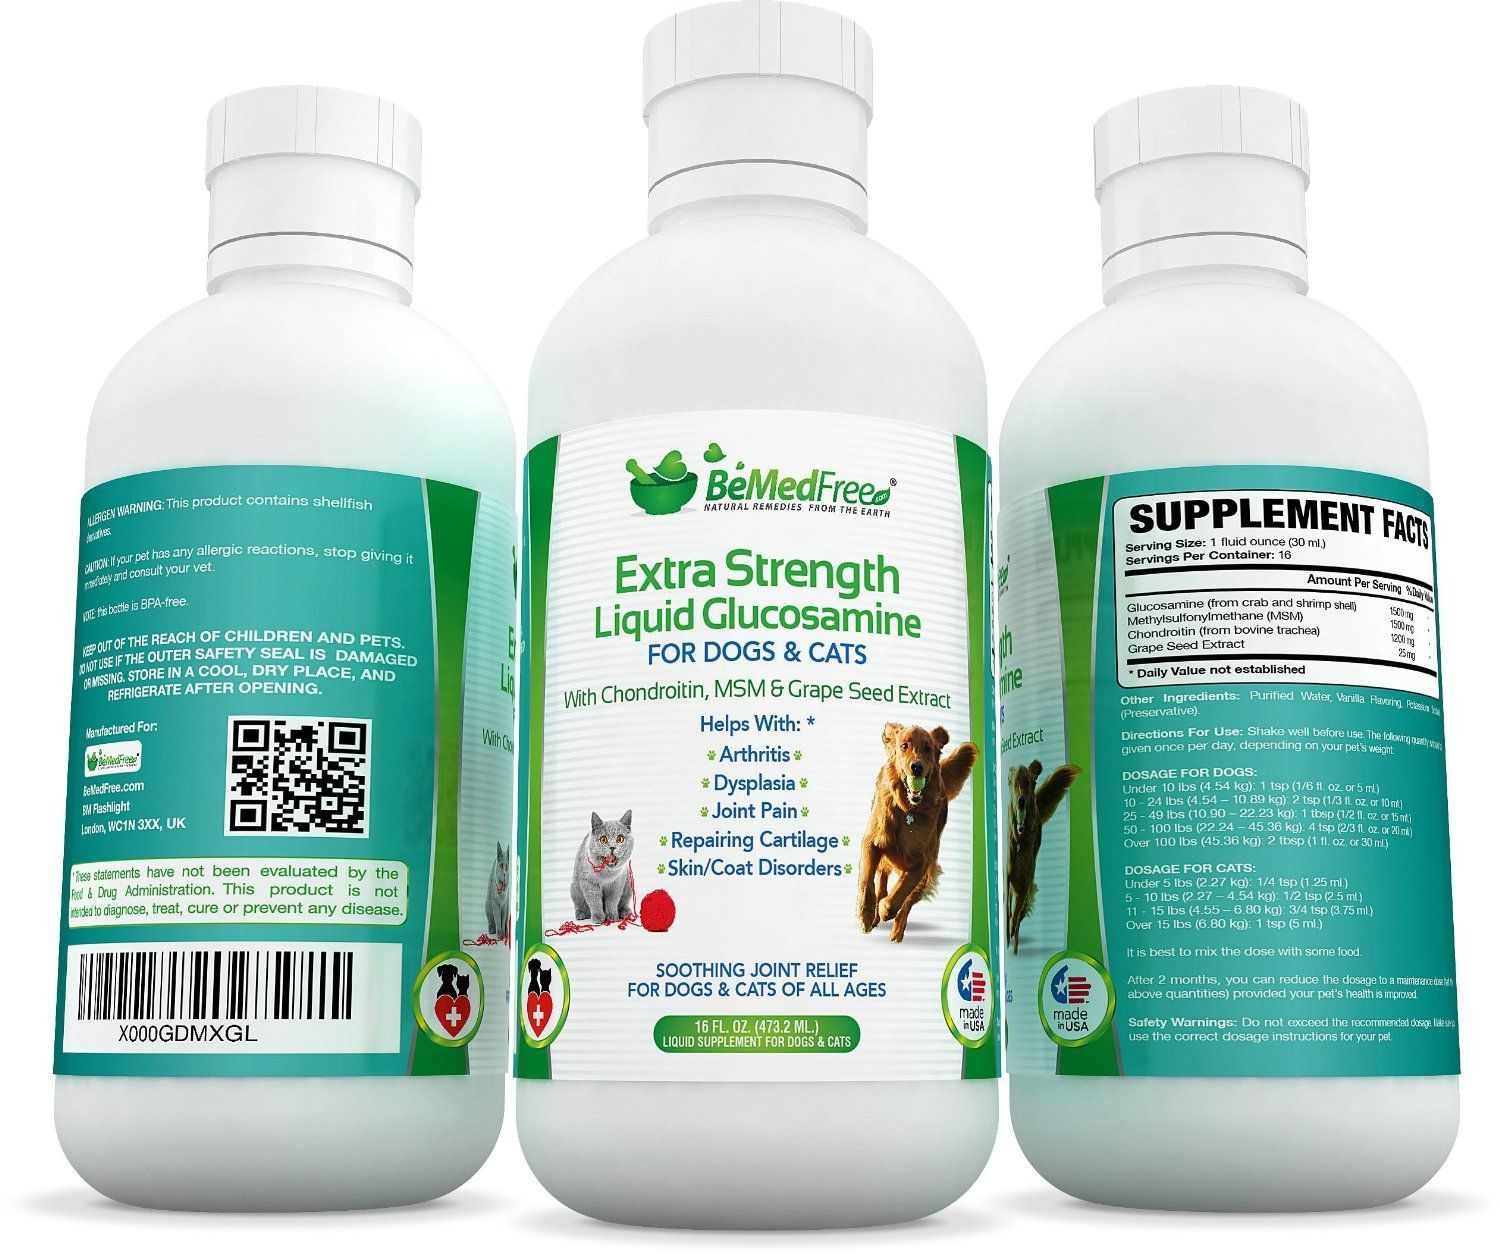 Extra Strength Liquid Glucosamine For Dogs Cats 16 Fl Oz Also Contains Chondroitin Msm Grape Seed Extract Best Natur Glucosamine Pet Shampoo Dog Cat